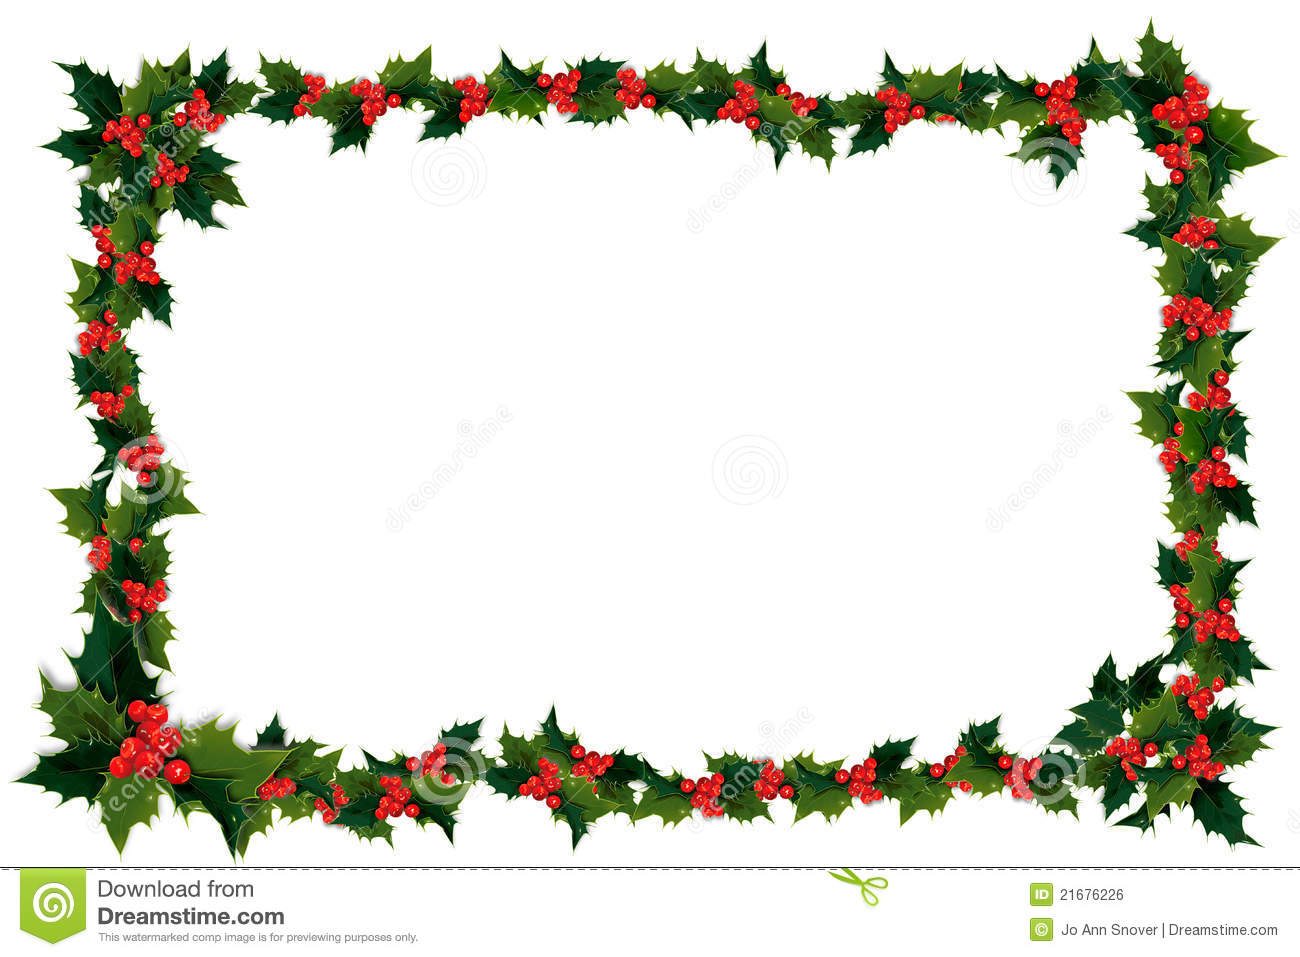 Holly Leaf And Berry Frame Royalty Free Stock Image - Image: 21676226